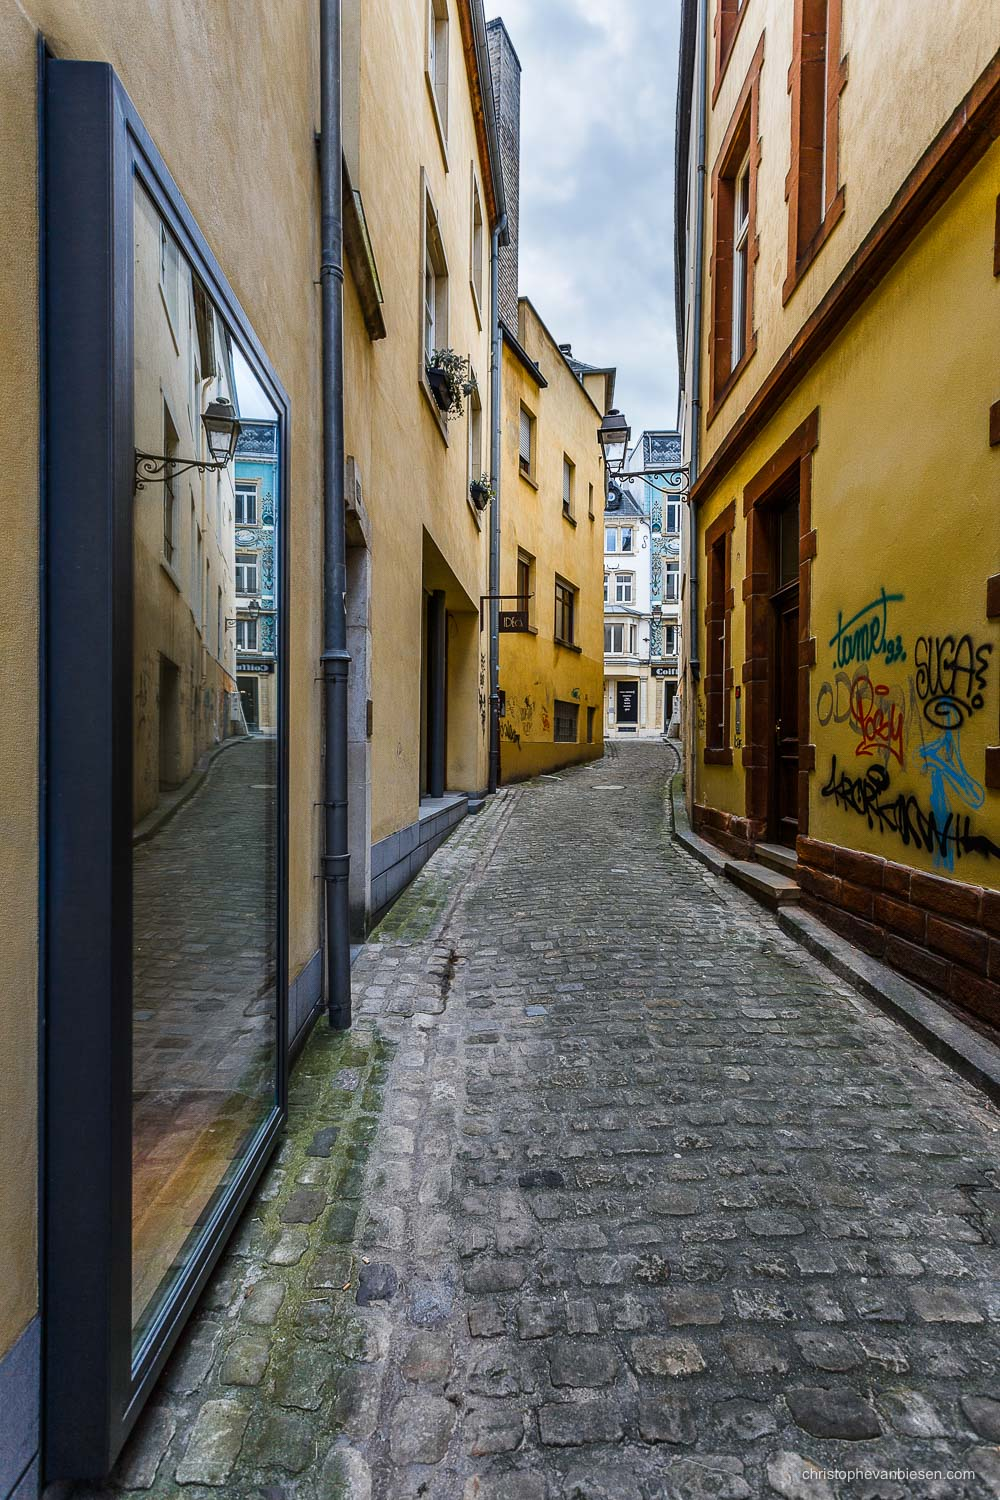 Narrow Streets of Luxembourg City - Rue de la Monnaie in Narrow Streets of Luxembourg City - The Narrows III